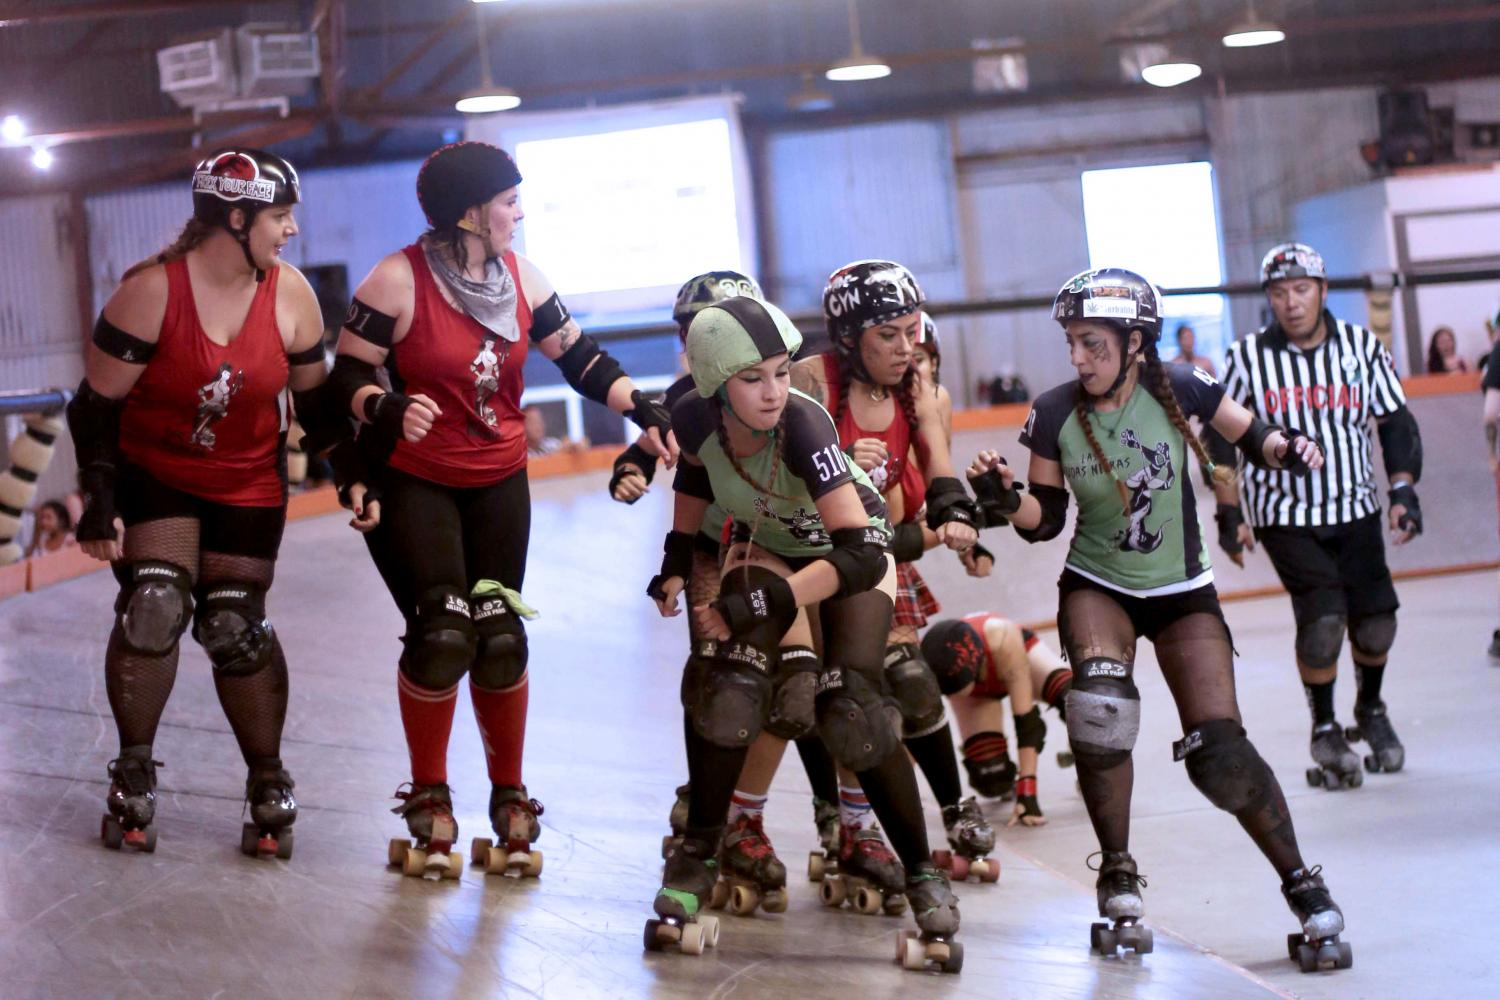 Roller+Derby%3A+The+grunge+and+grit+of+sports